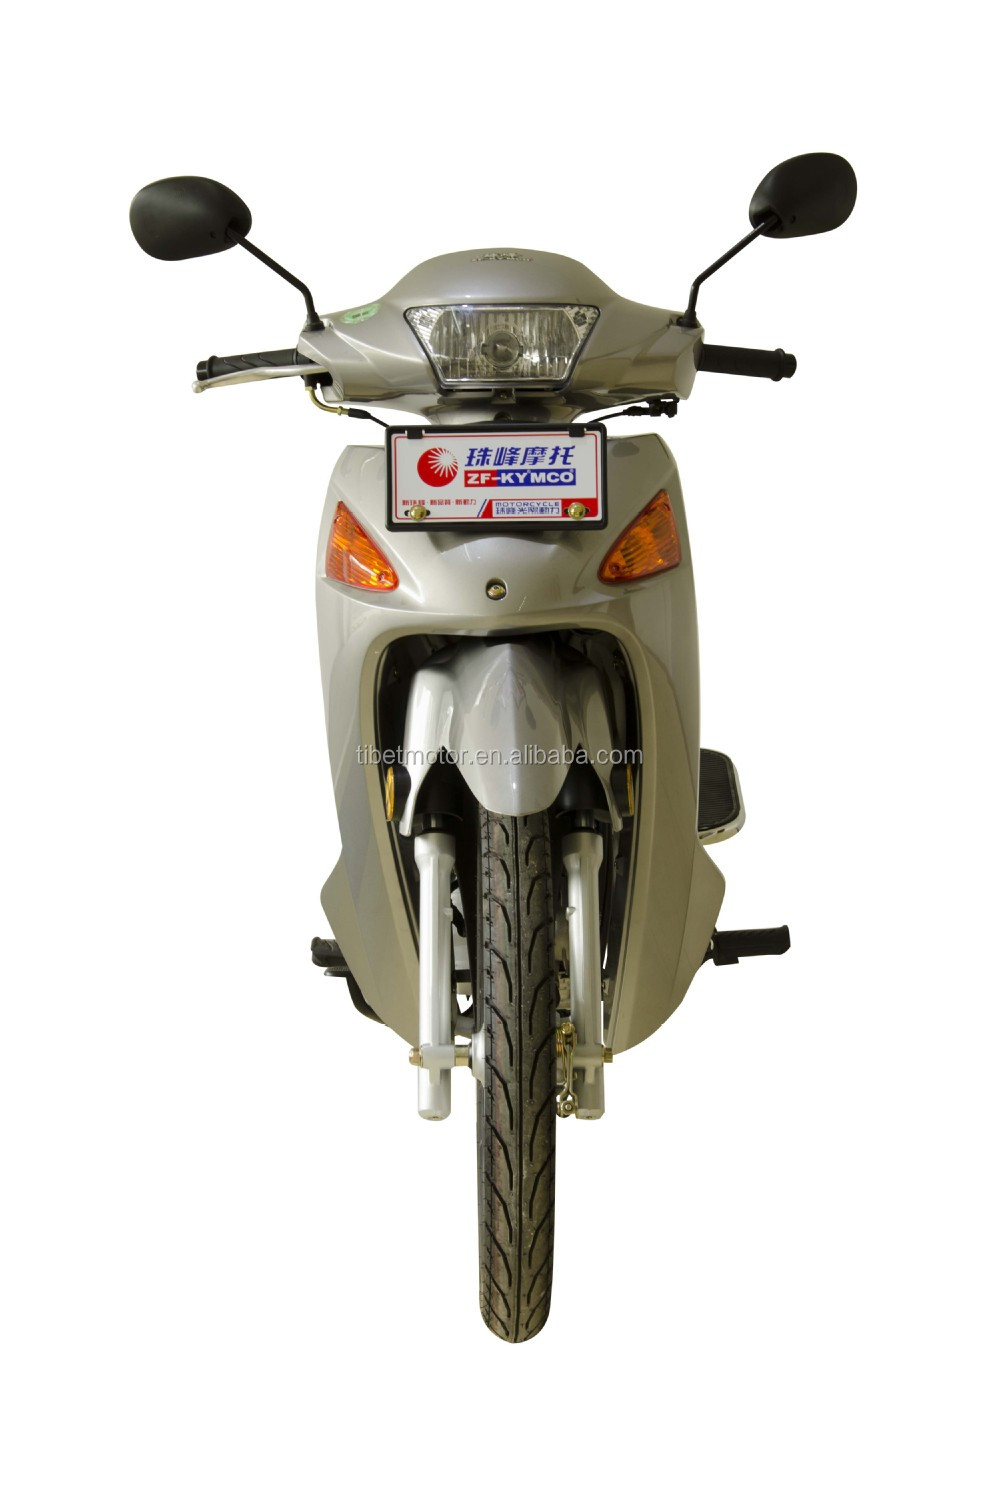 cheap price bike chopper 110cc (ZF110-14)